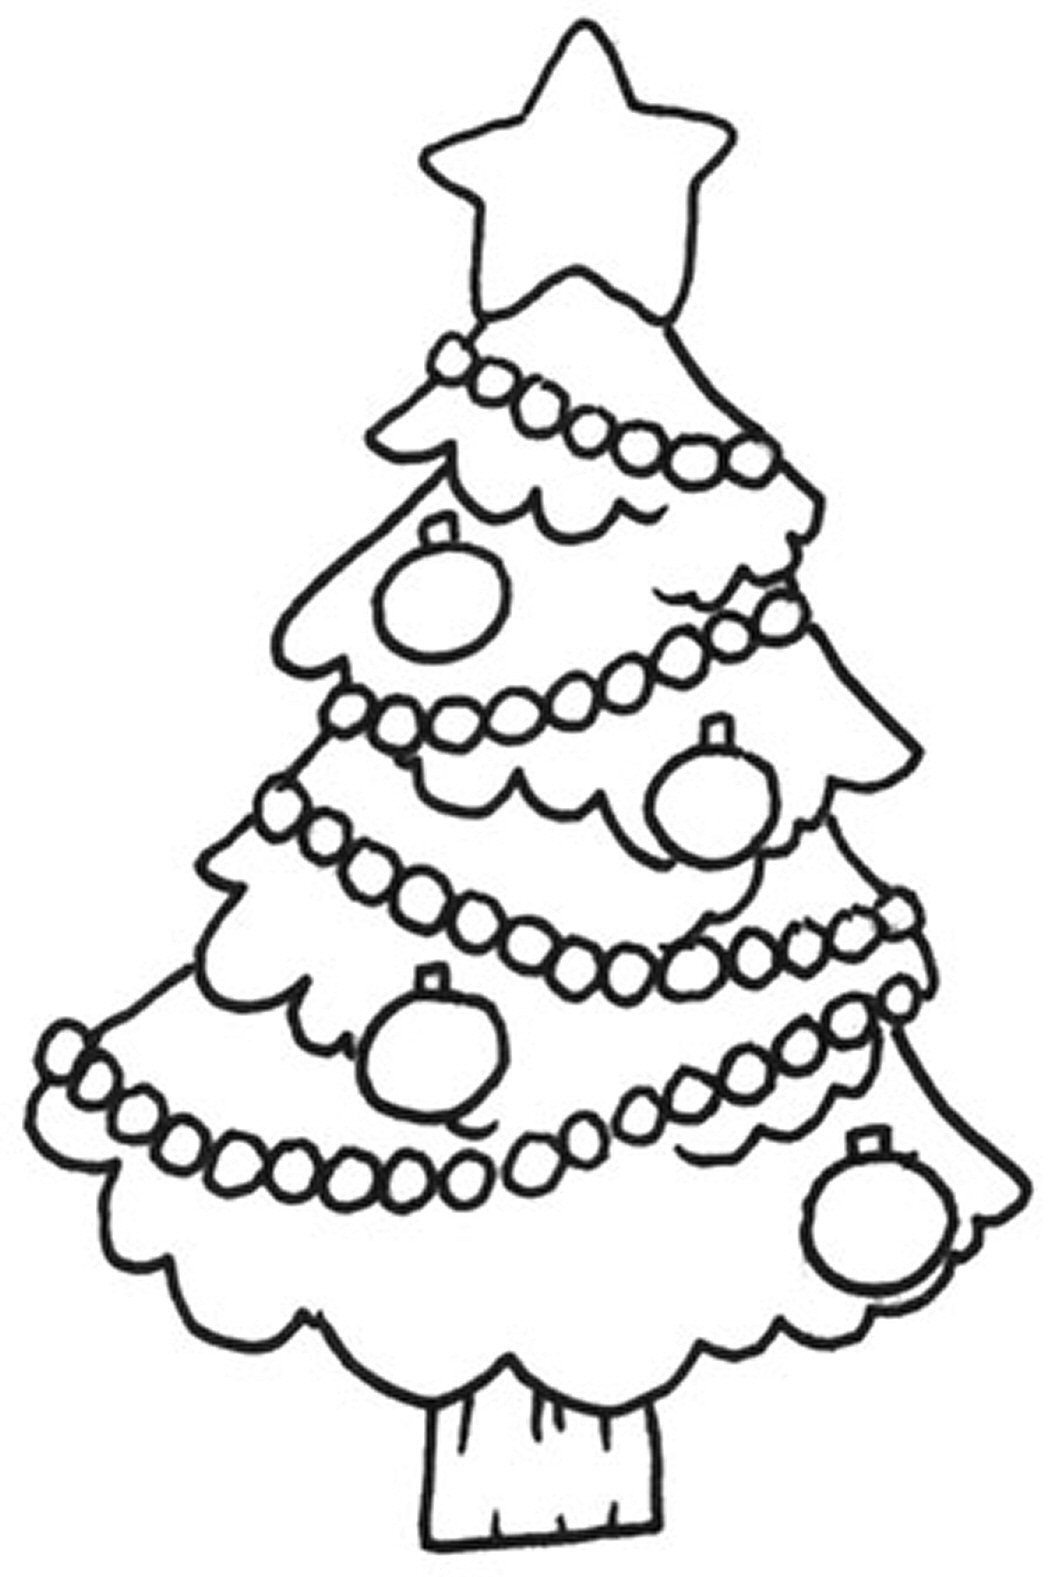 Christmas Coloring Pages For Kids To Print Out  Free Printable Christmas Tree Coloring Pages For Kids